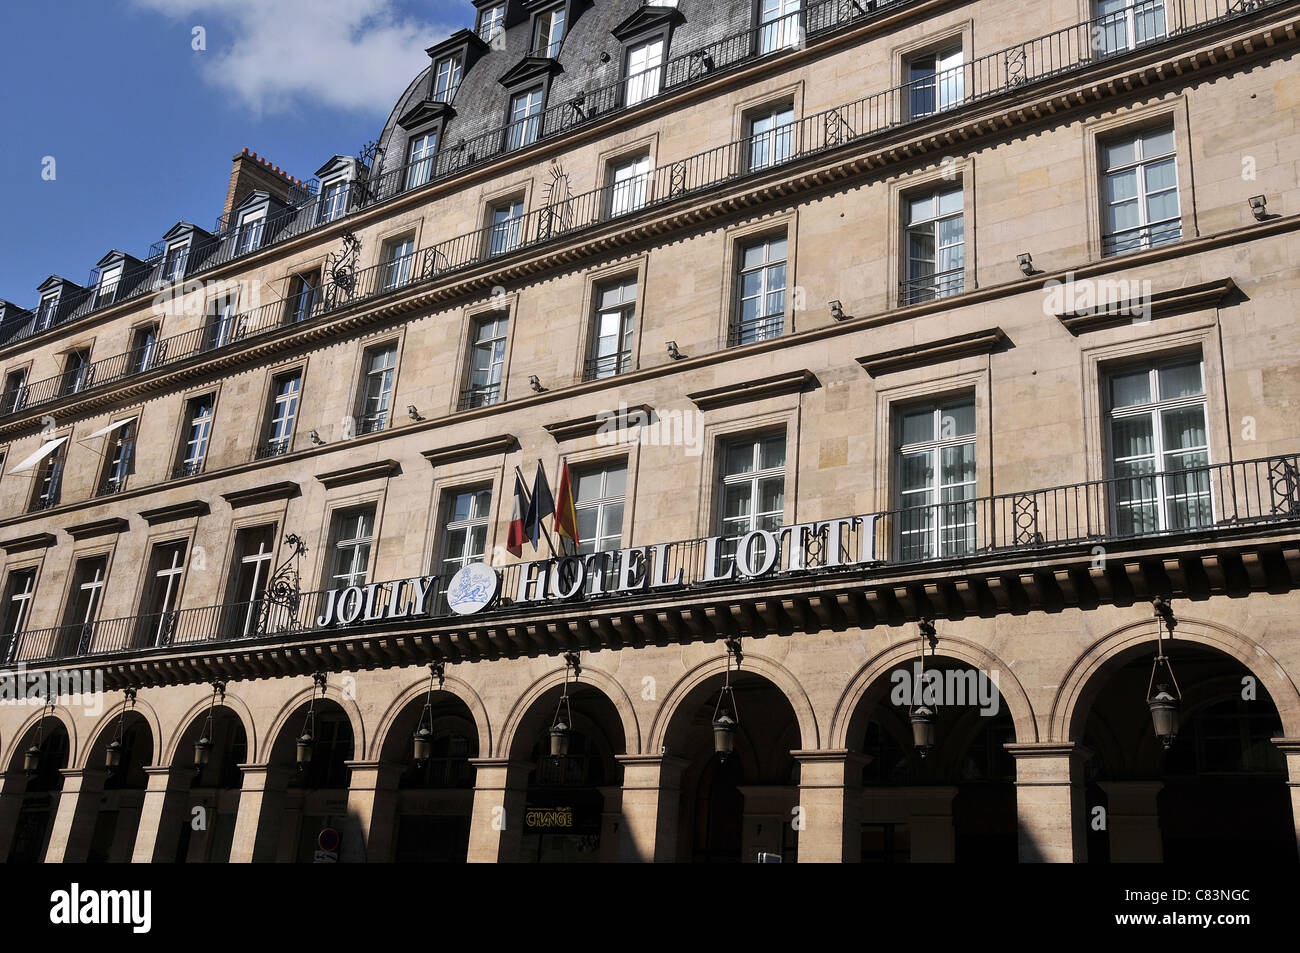 Jolly Hotel Lotti Paris France - Stock Image